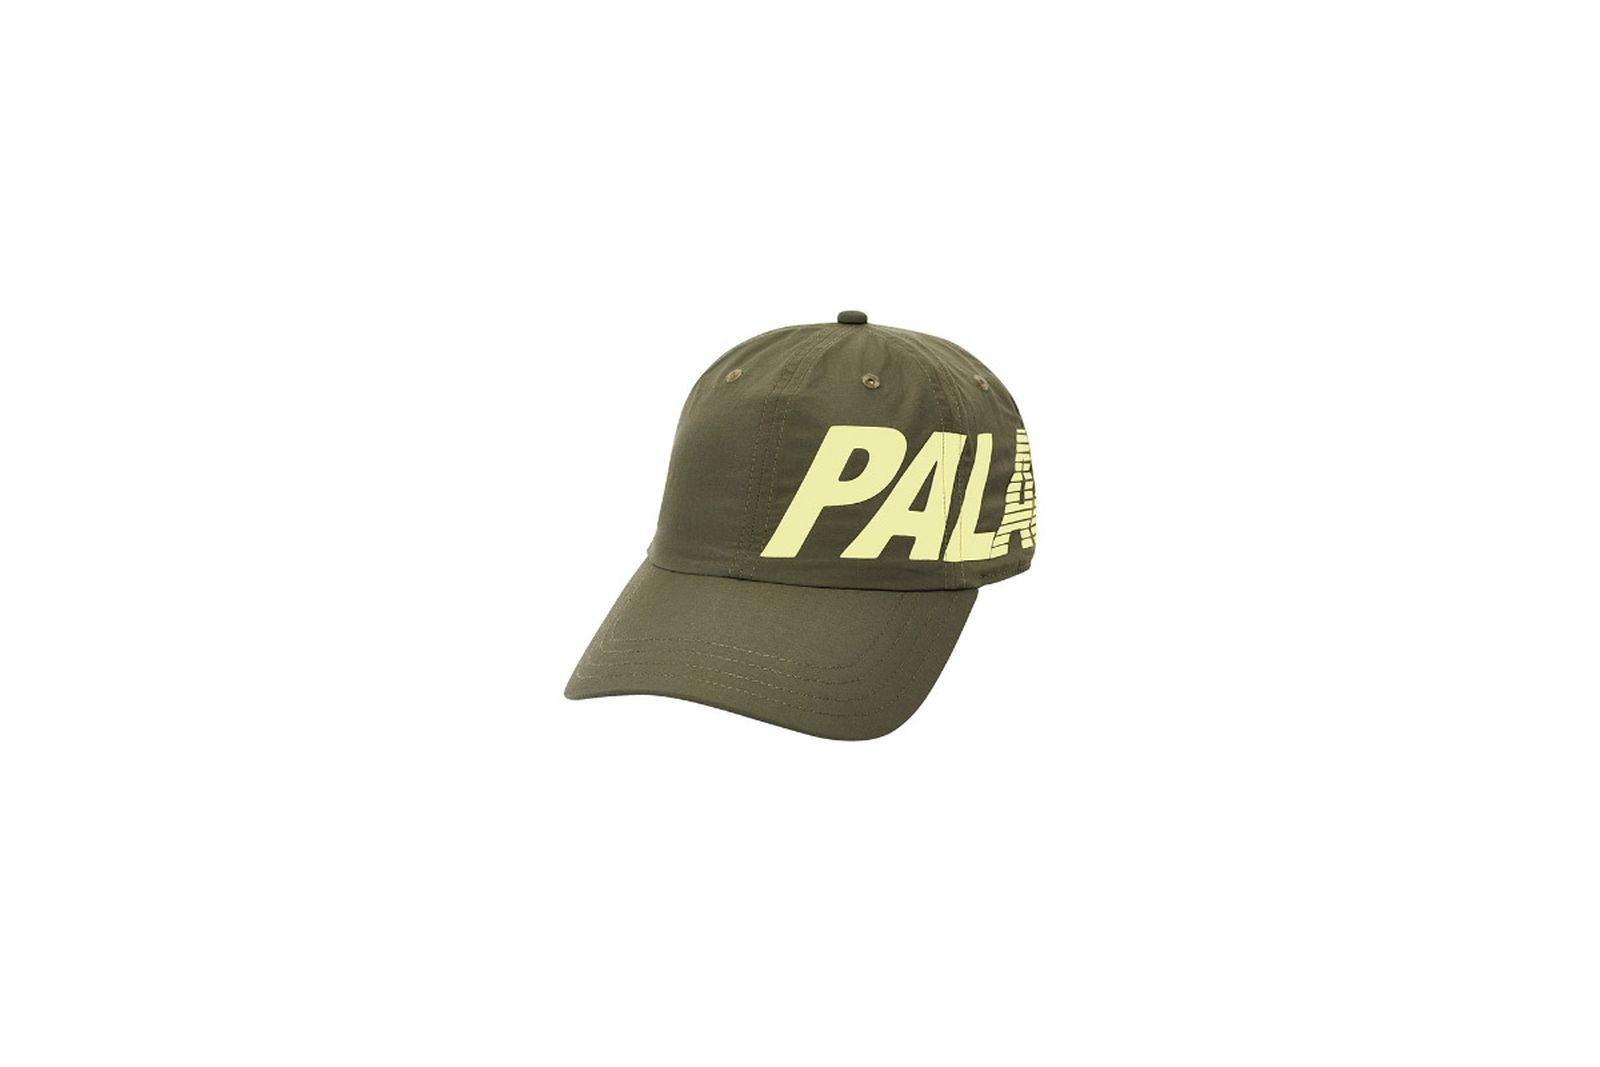 Palace 2019 Autumn cap side man 6 panel olive1631